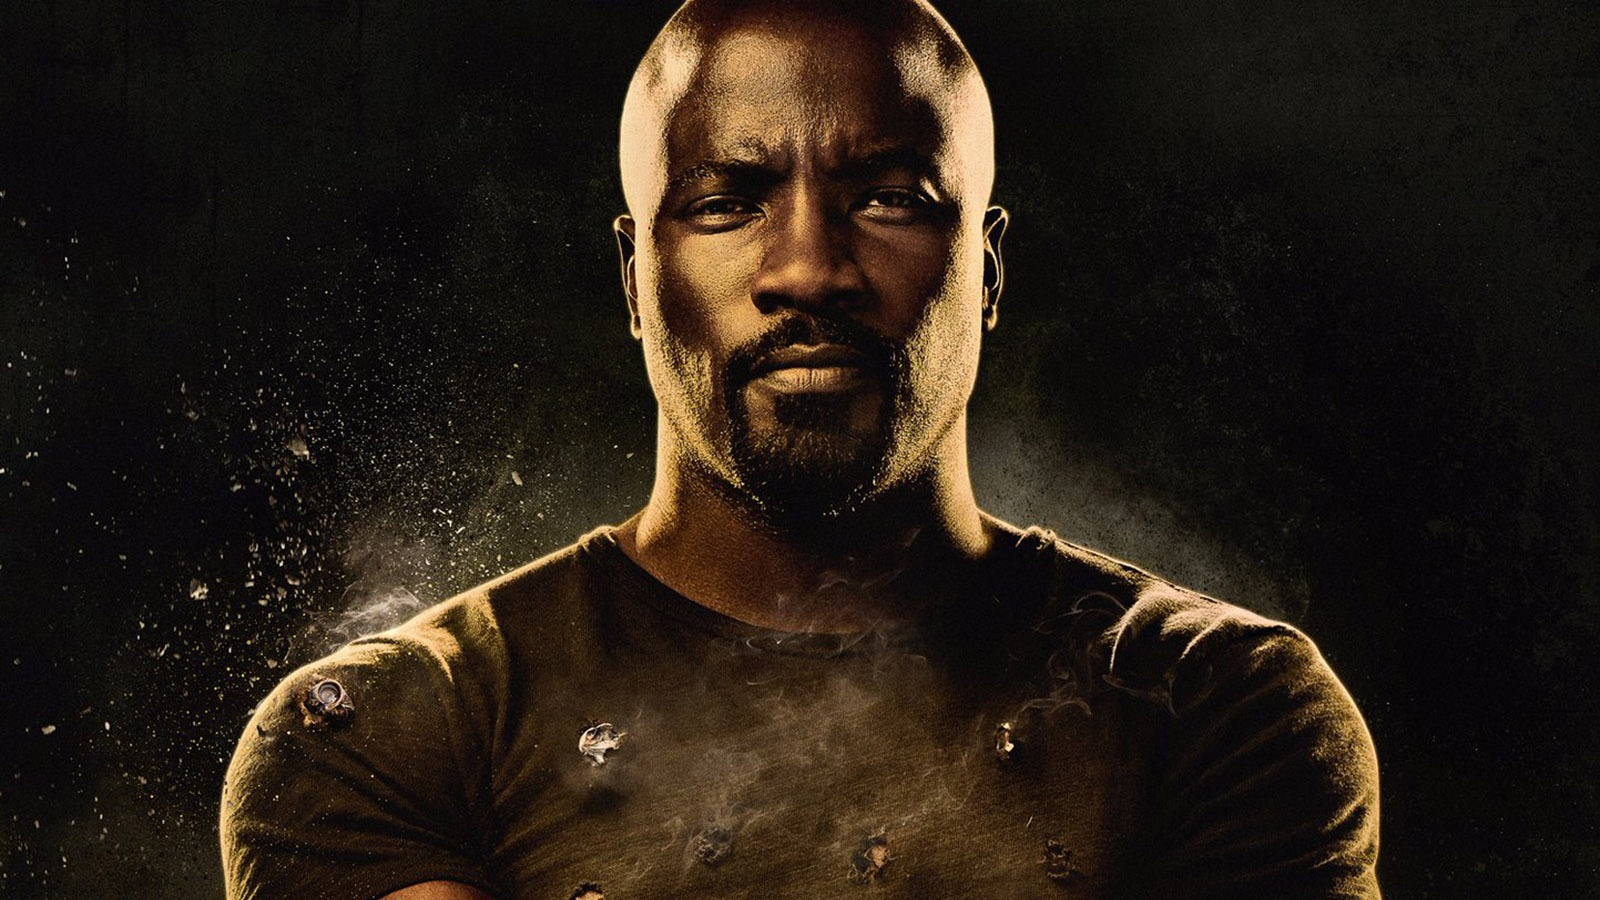 Люк Кейдж/Marvel's Luke Cage background